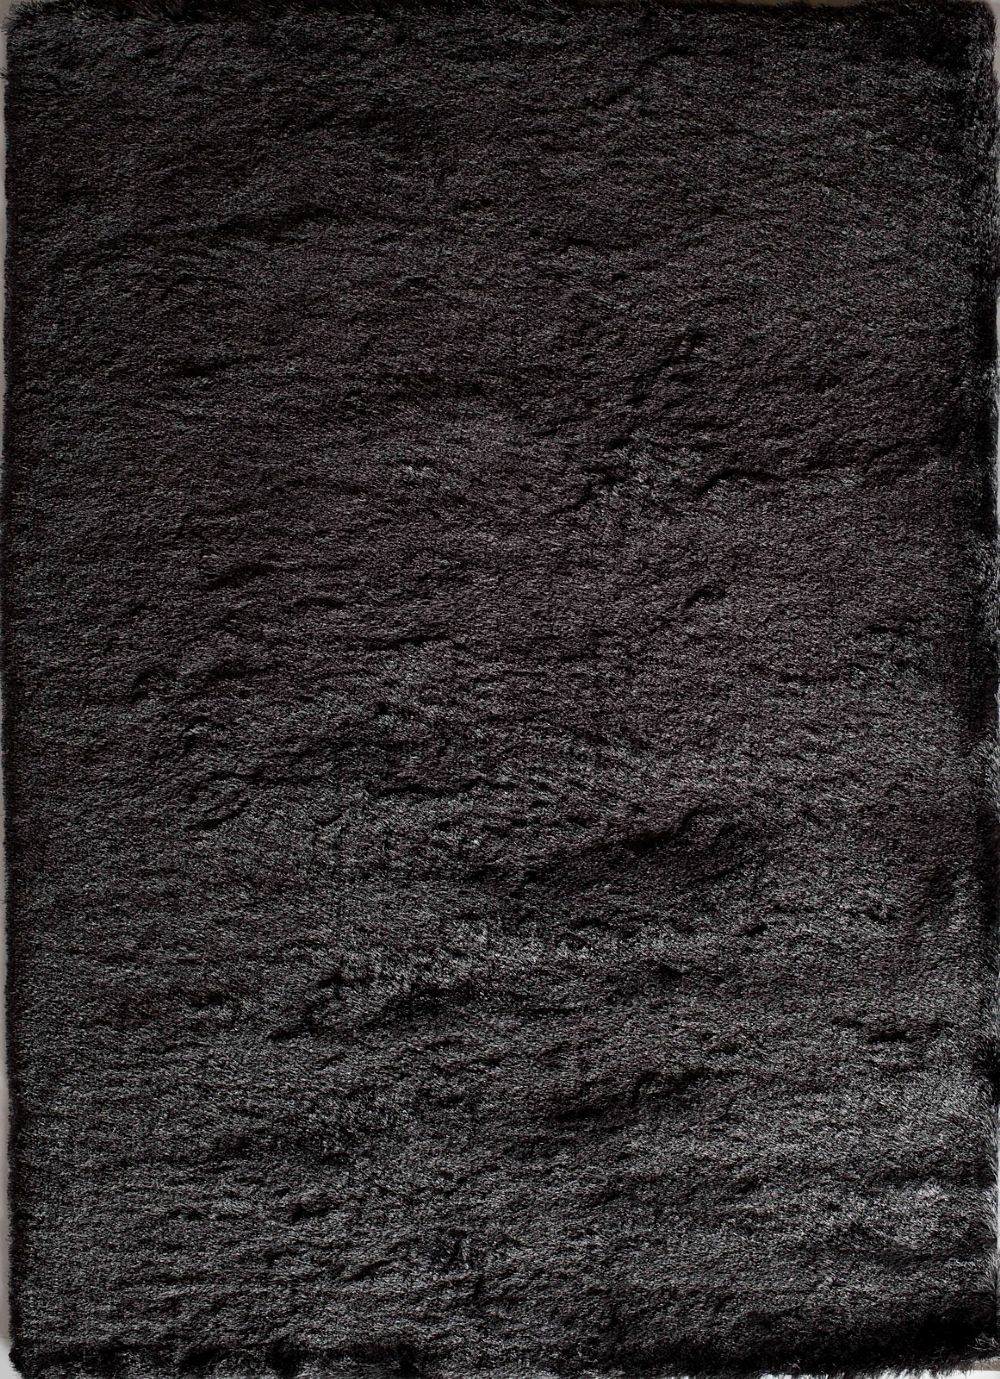 rugs america luster shag shag area rug collection